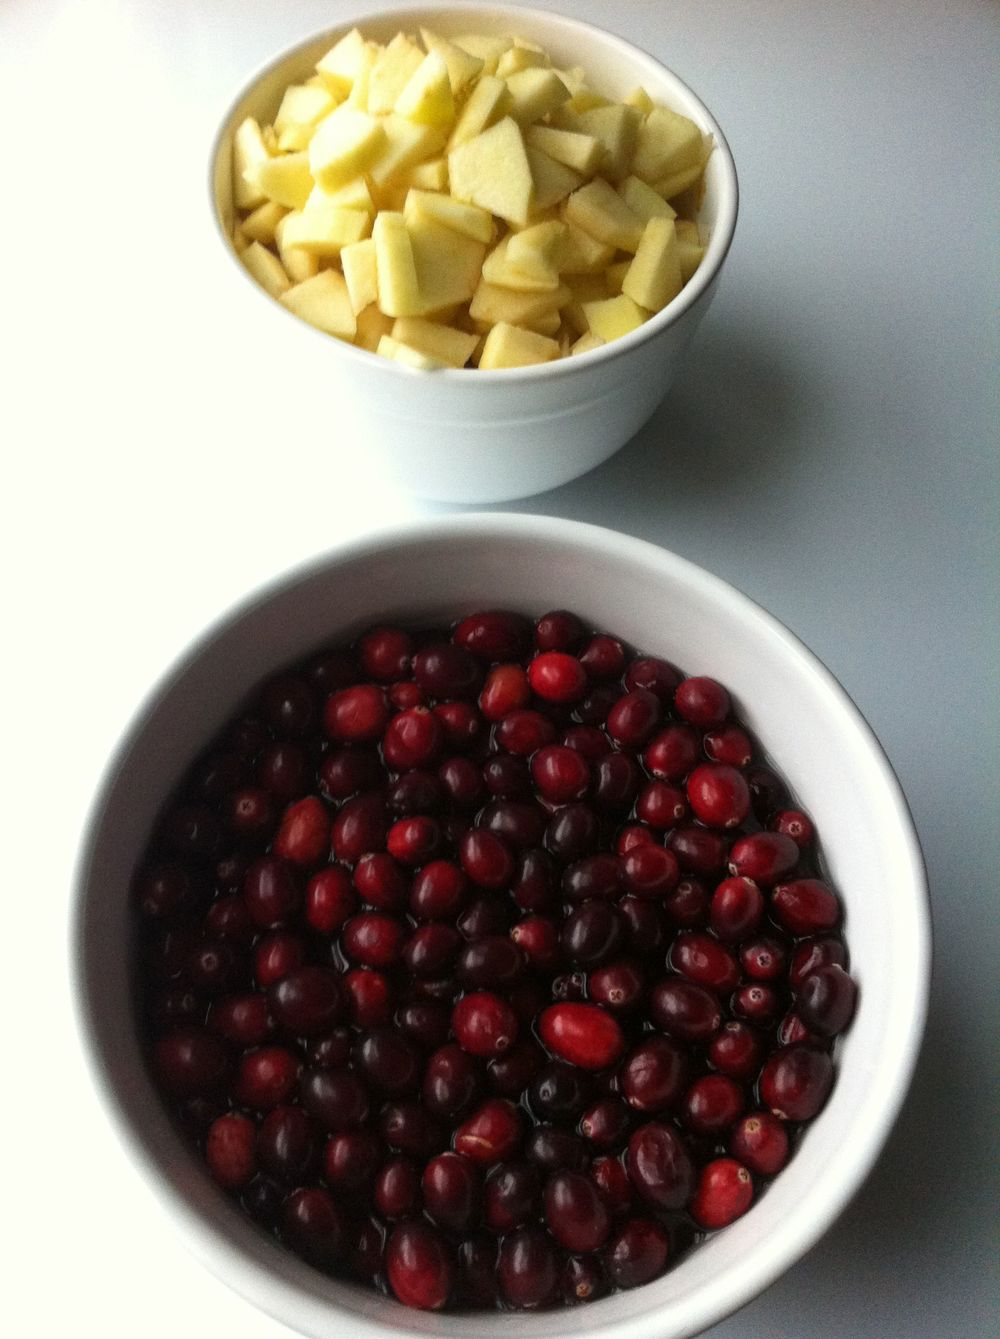 Apples and Cranberries